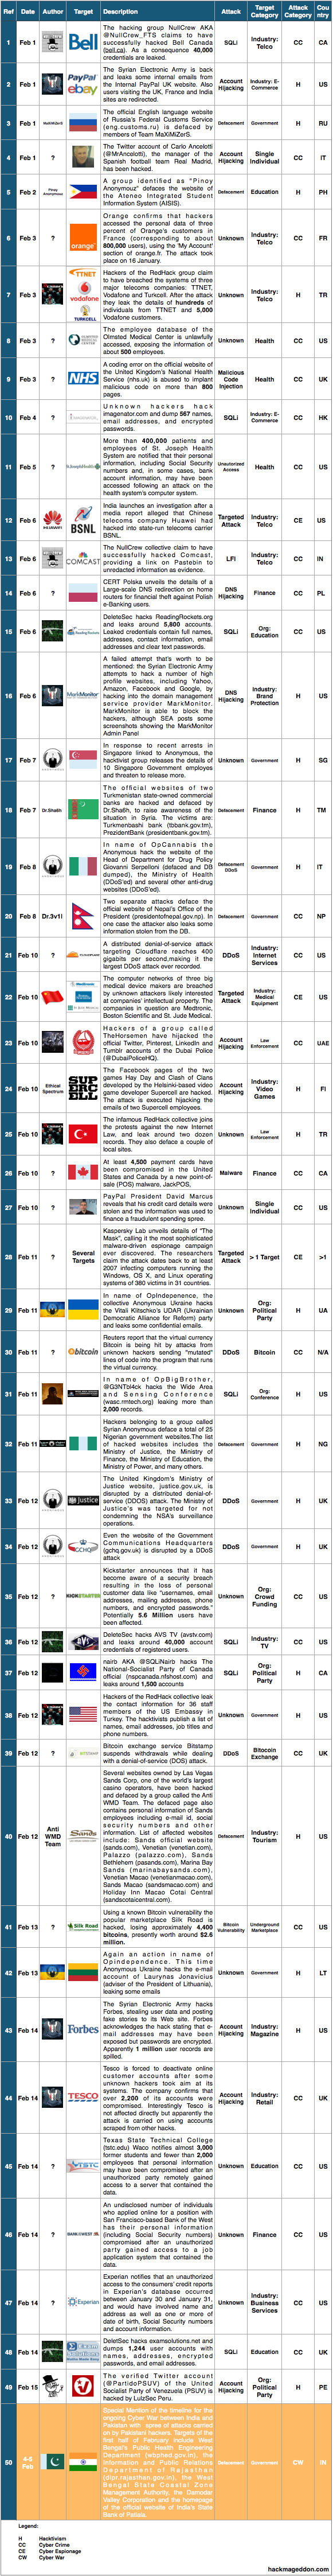 1-15 Feb 2014 Cyber Attacks Timelines